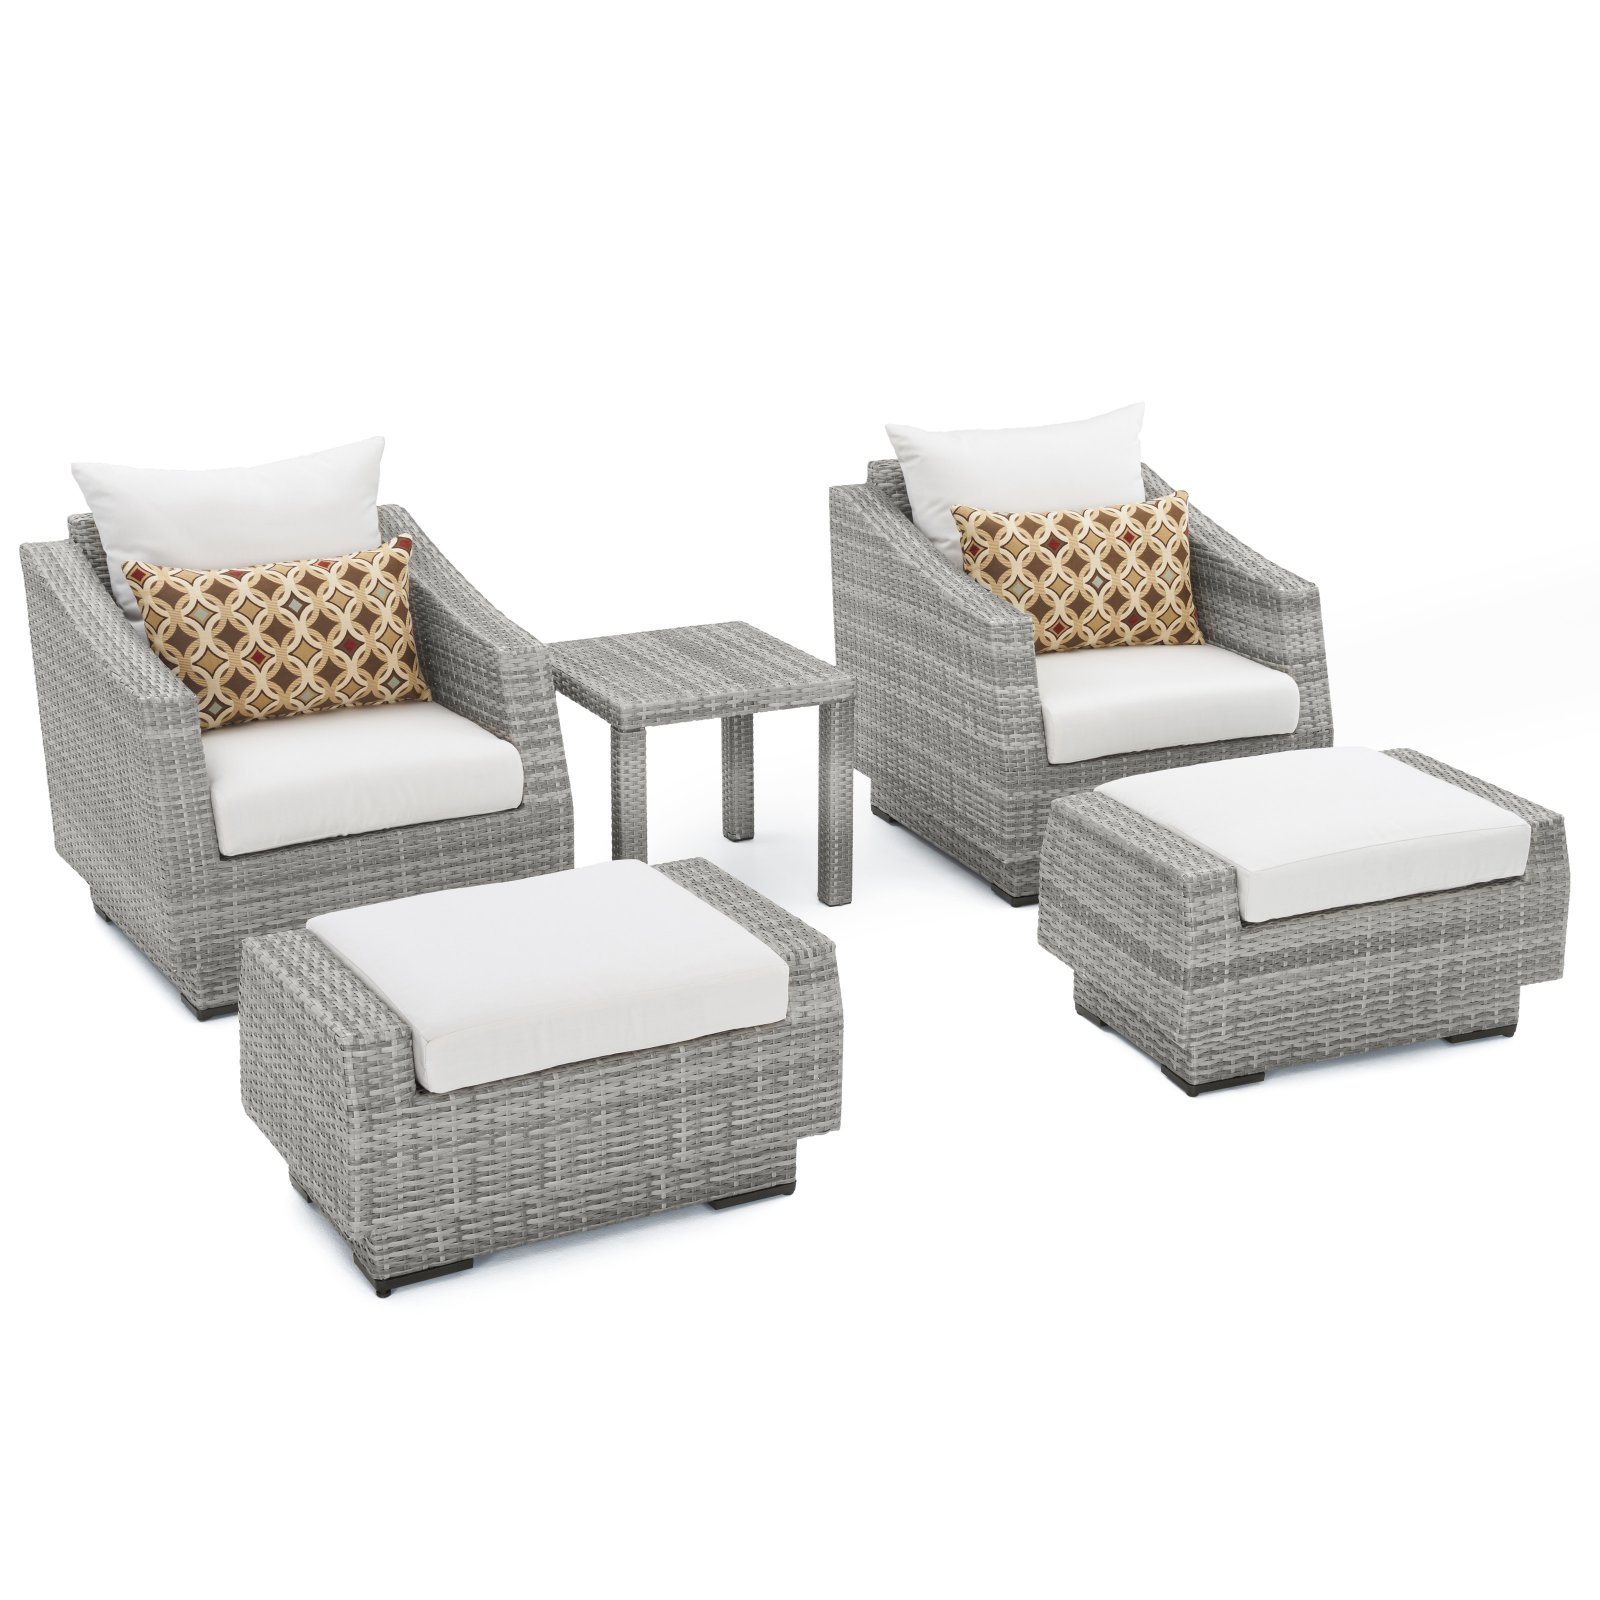 RST Brands Cannes 5pc Club Chair and Ottoman Set Cannes 5pc Outdoor Chair and Ot